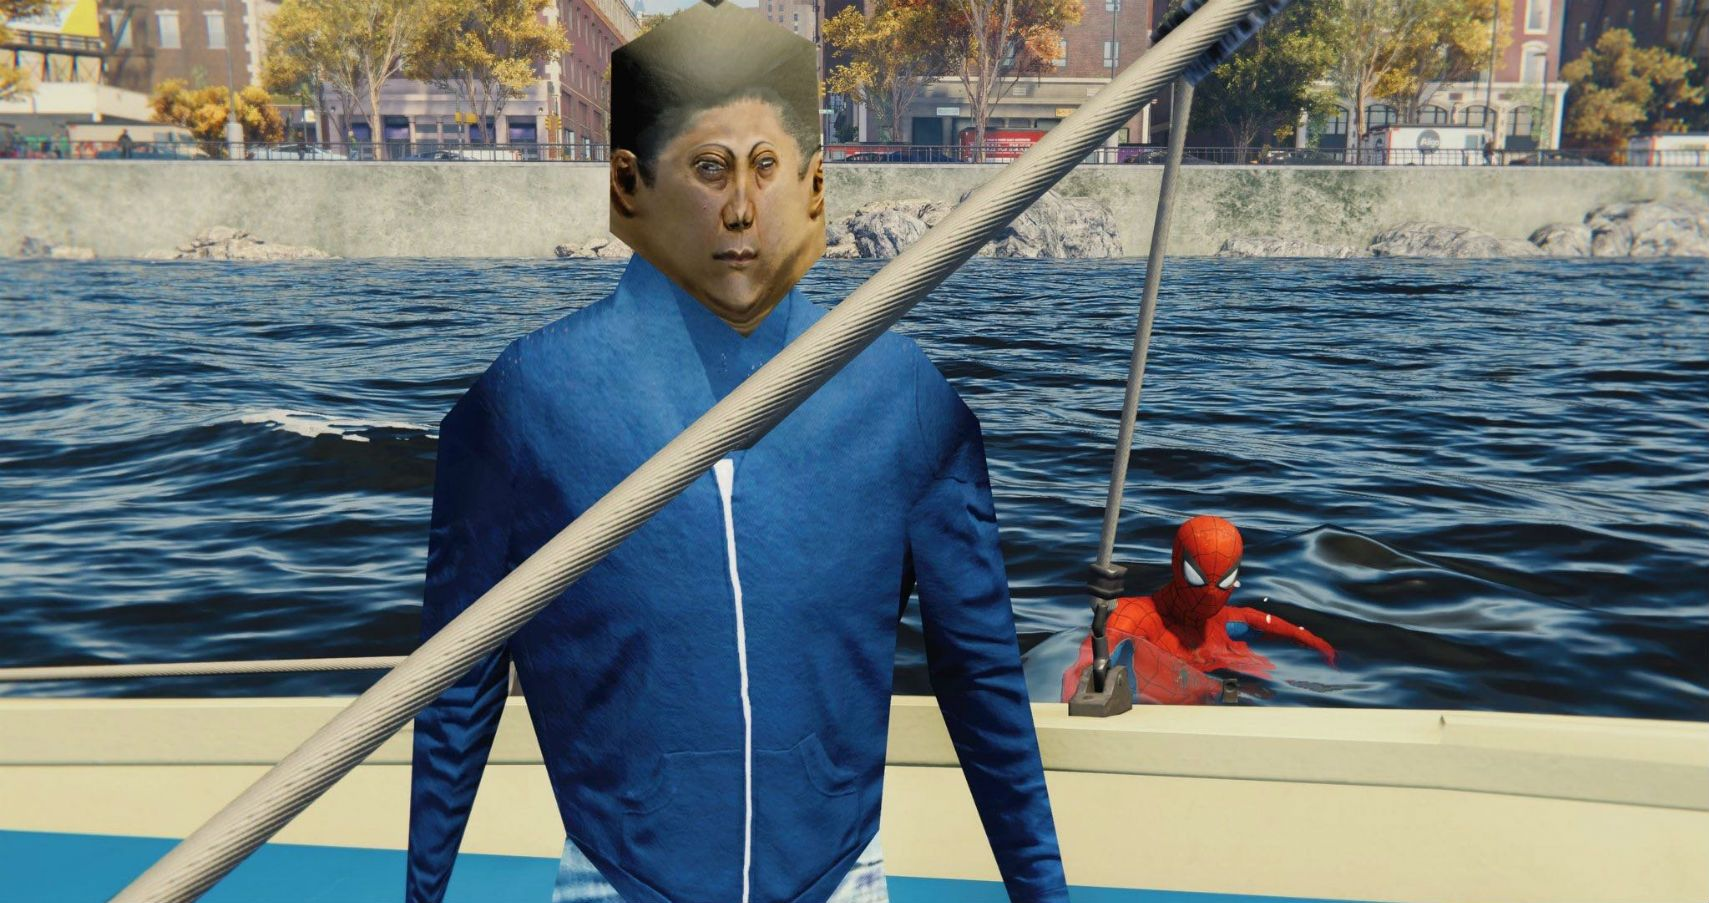 marvel's spider-man has terrifying boat people - is it a weird